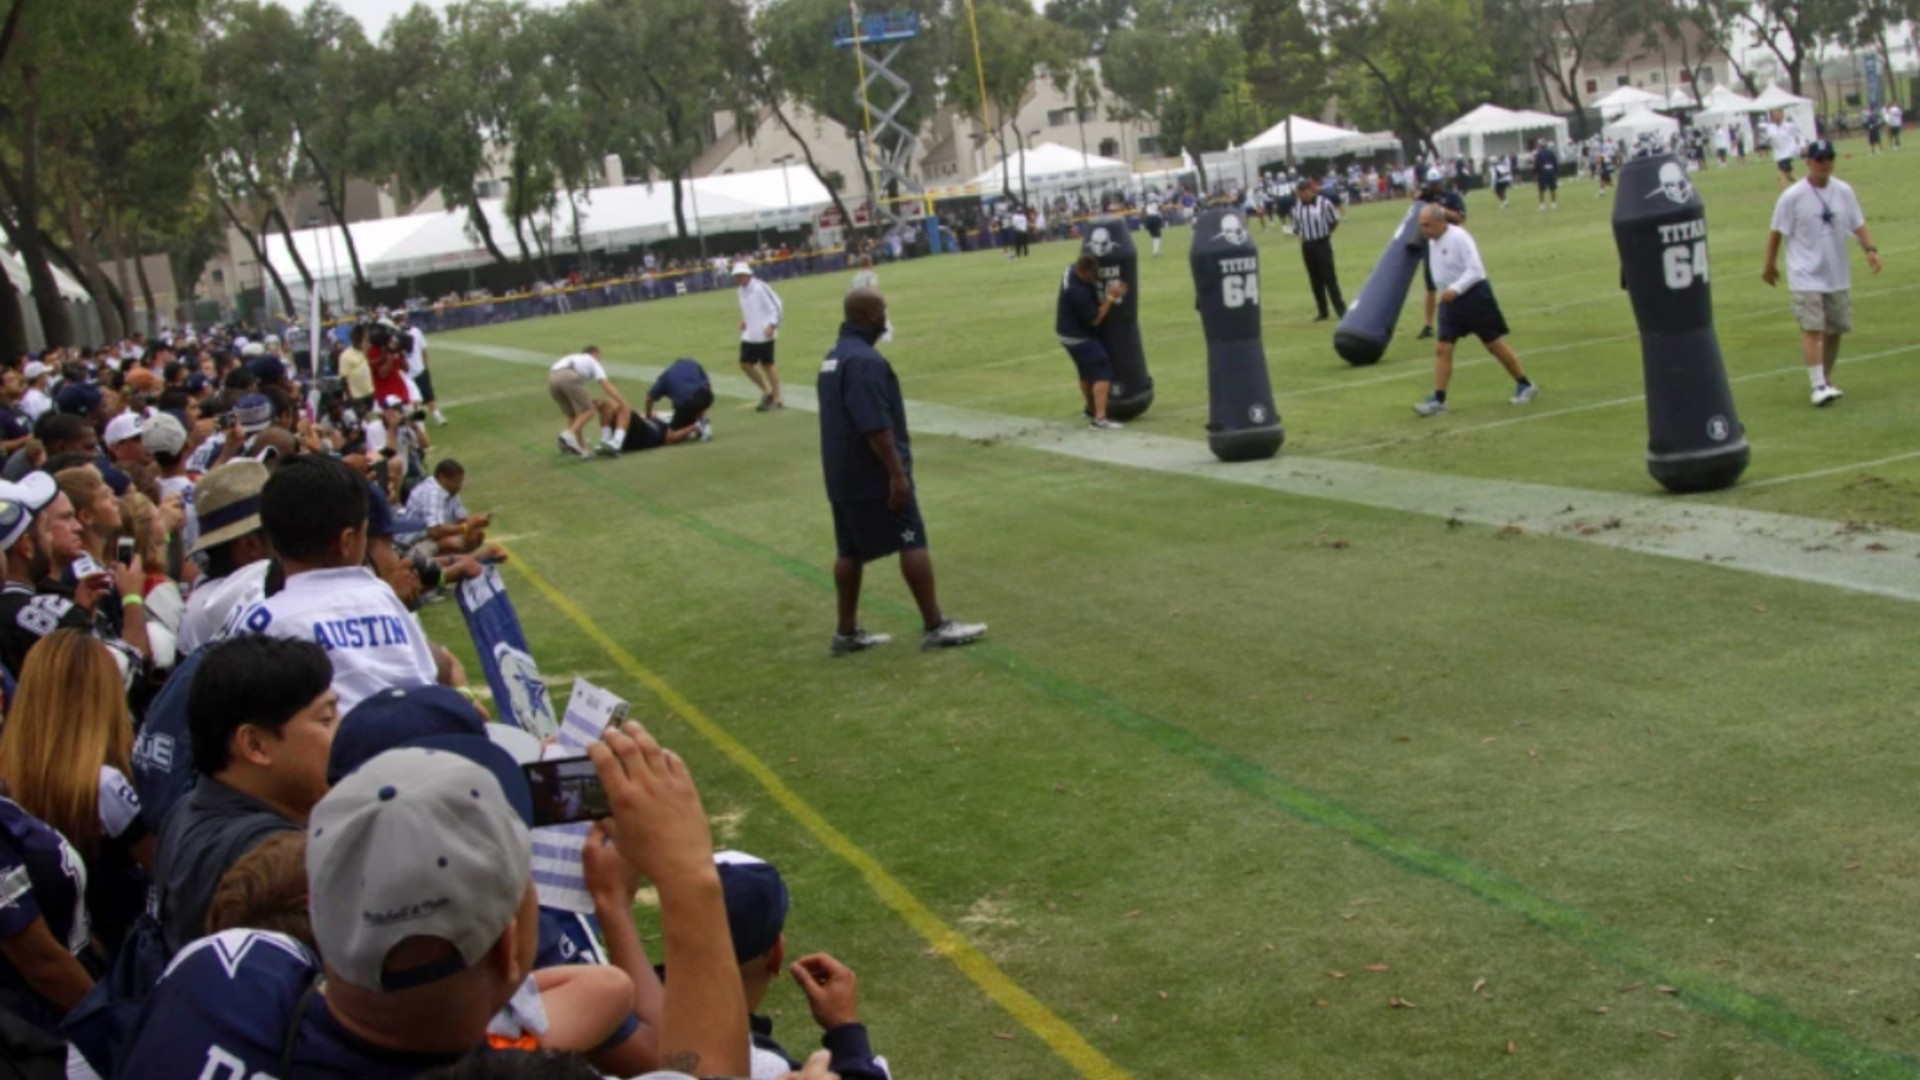 This file photo shows the Dallas Cowboys training camp in Oxnard in 2013. (Lawrence K. Ho / Los Angeles Times)